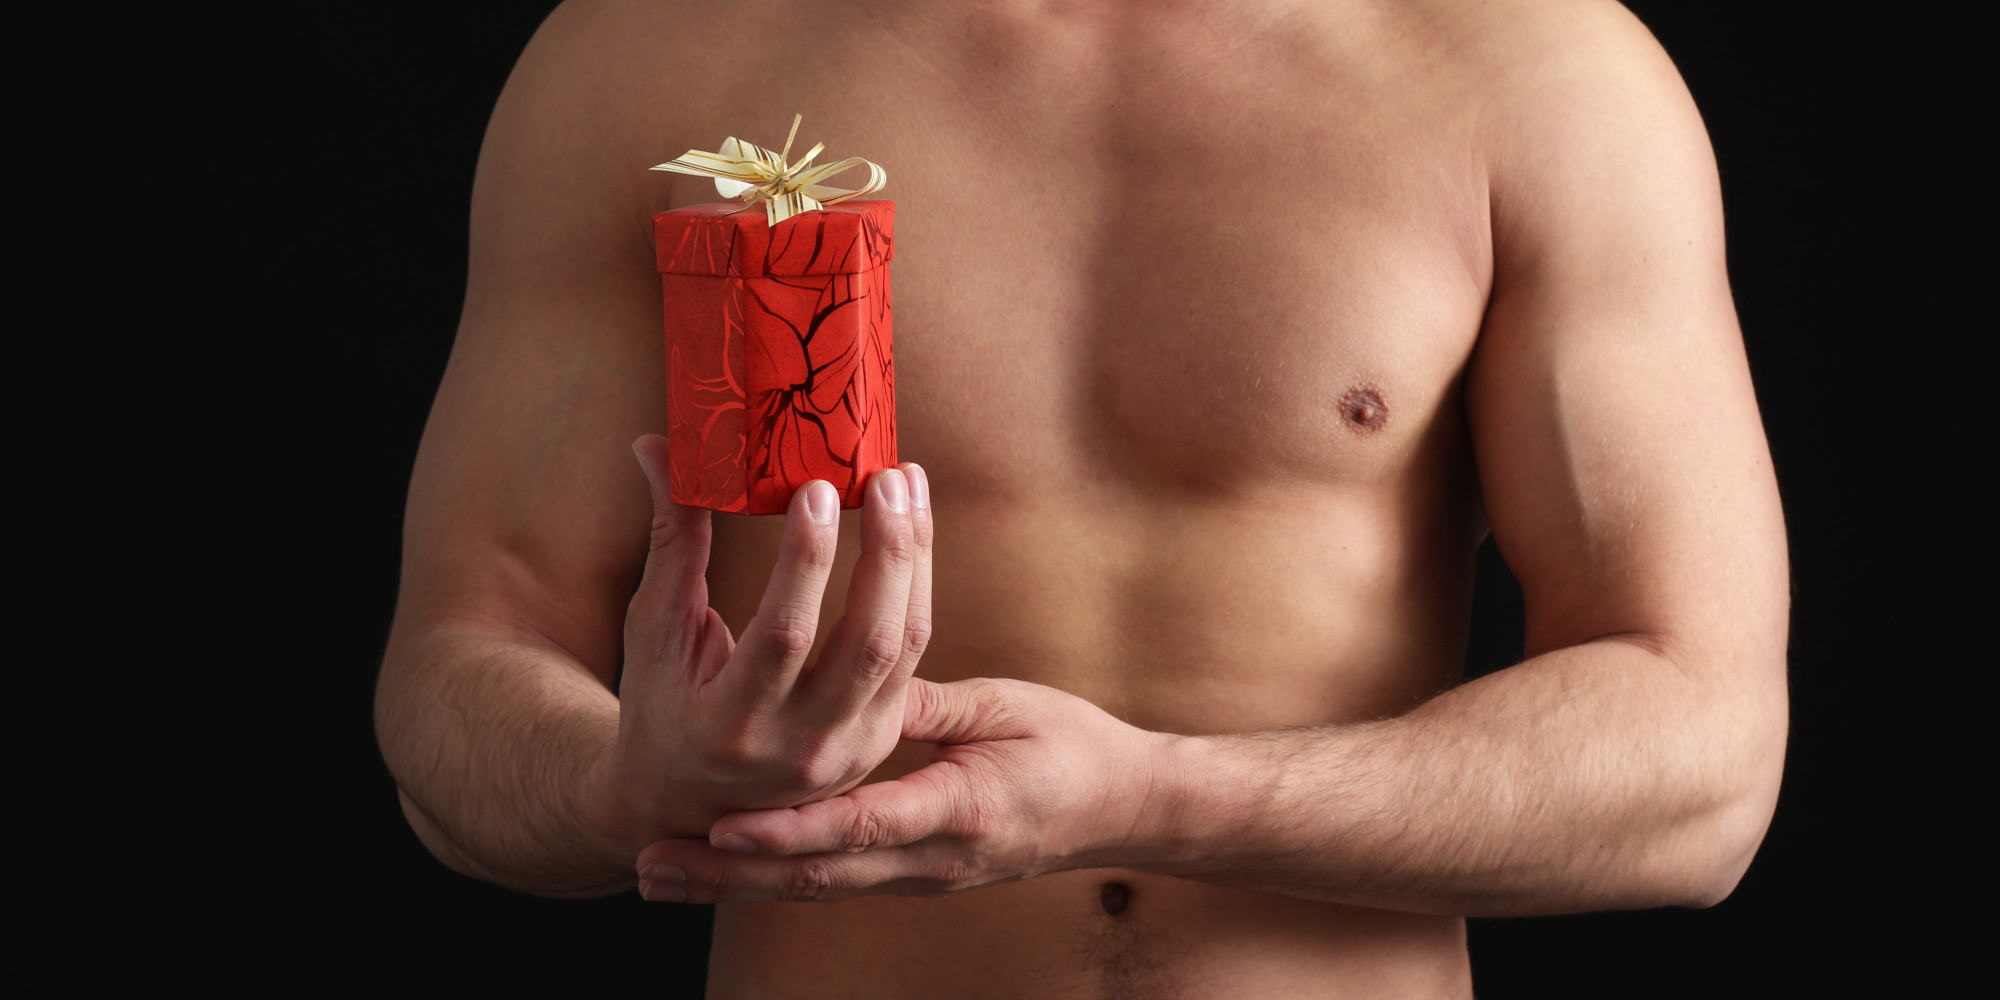 valentine's day is 'only for one man and one woman,' says anti-gay, Ideas